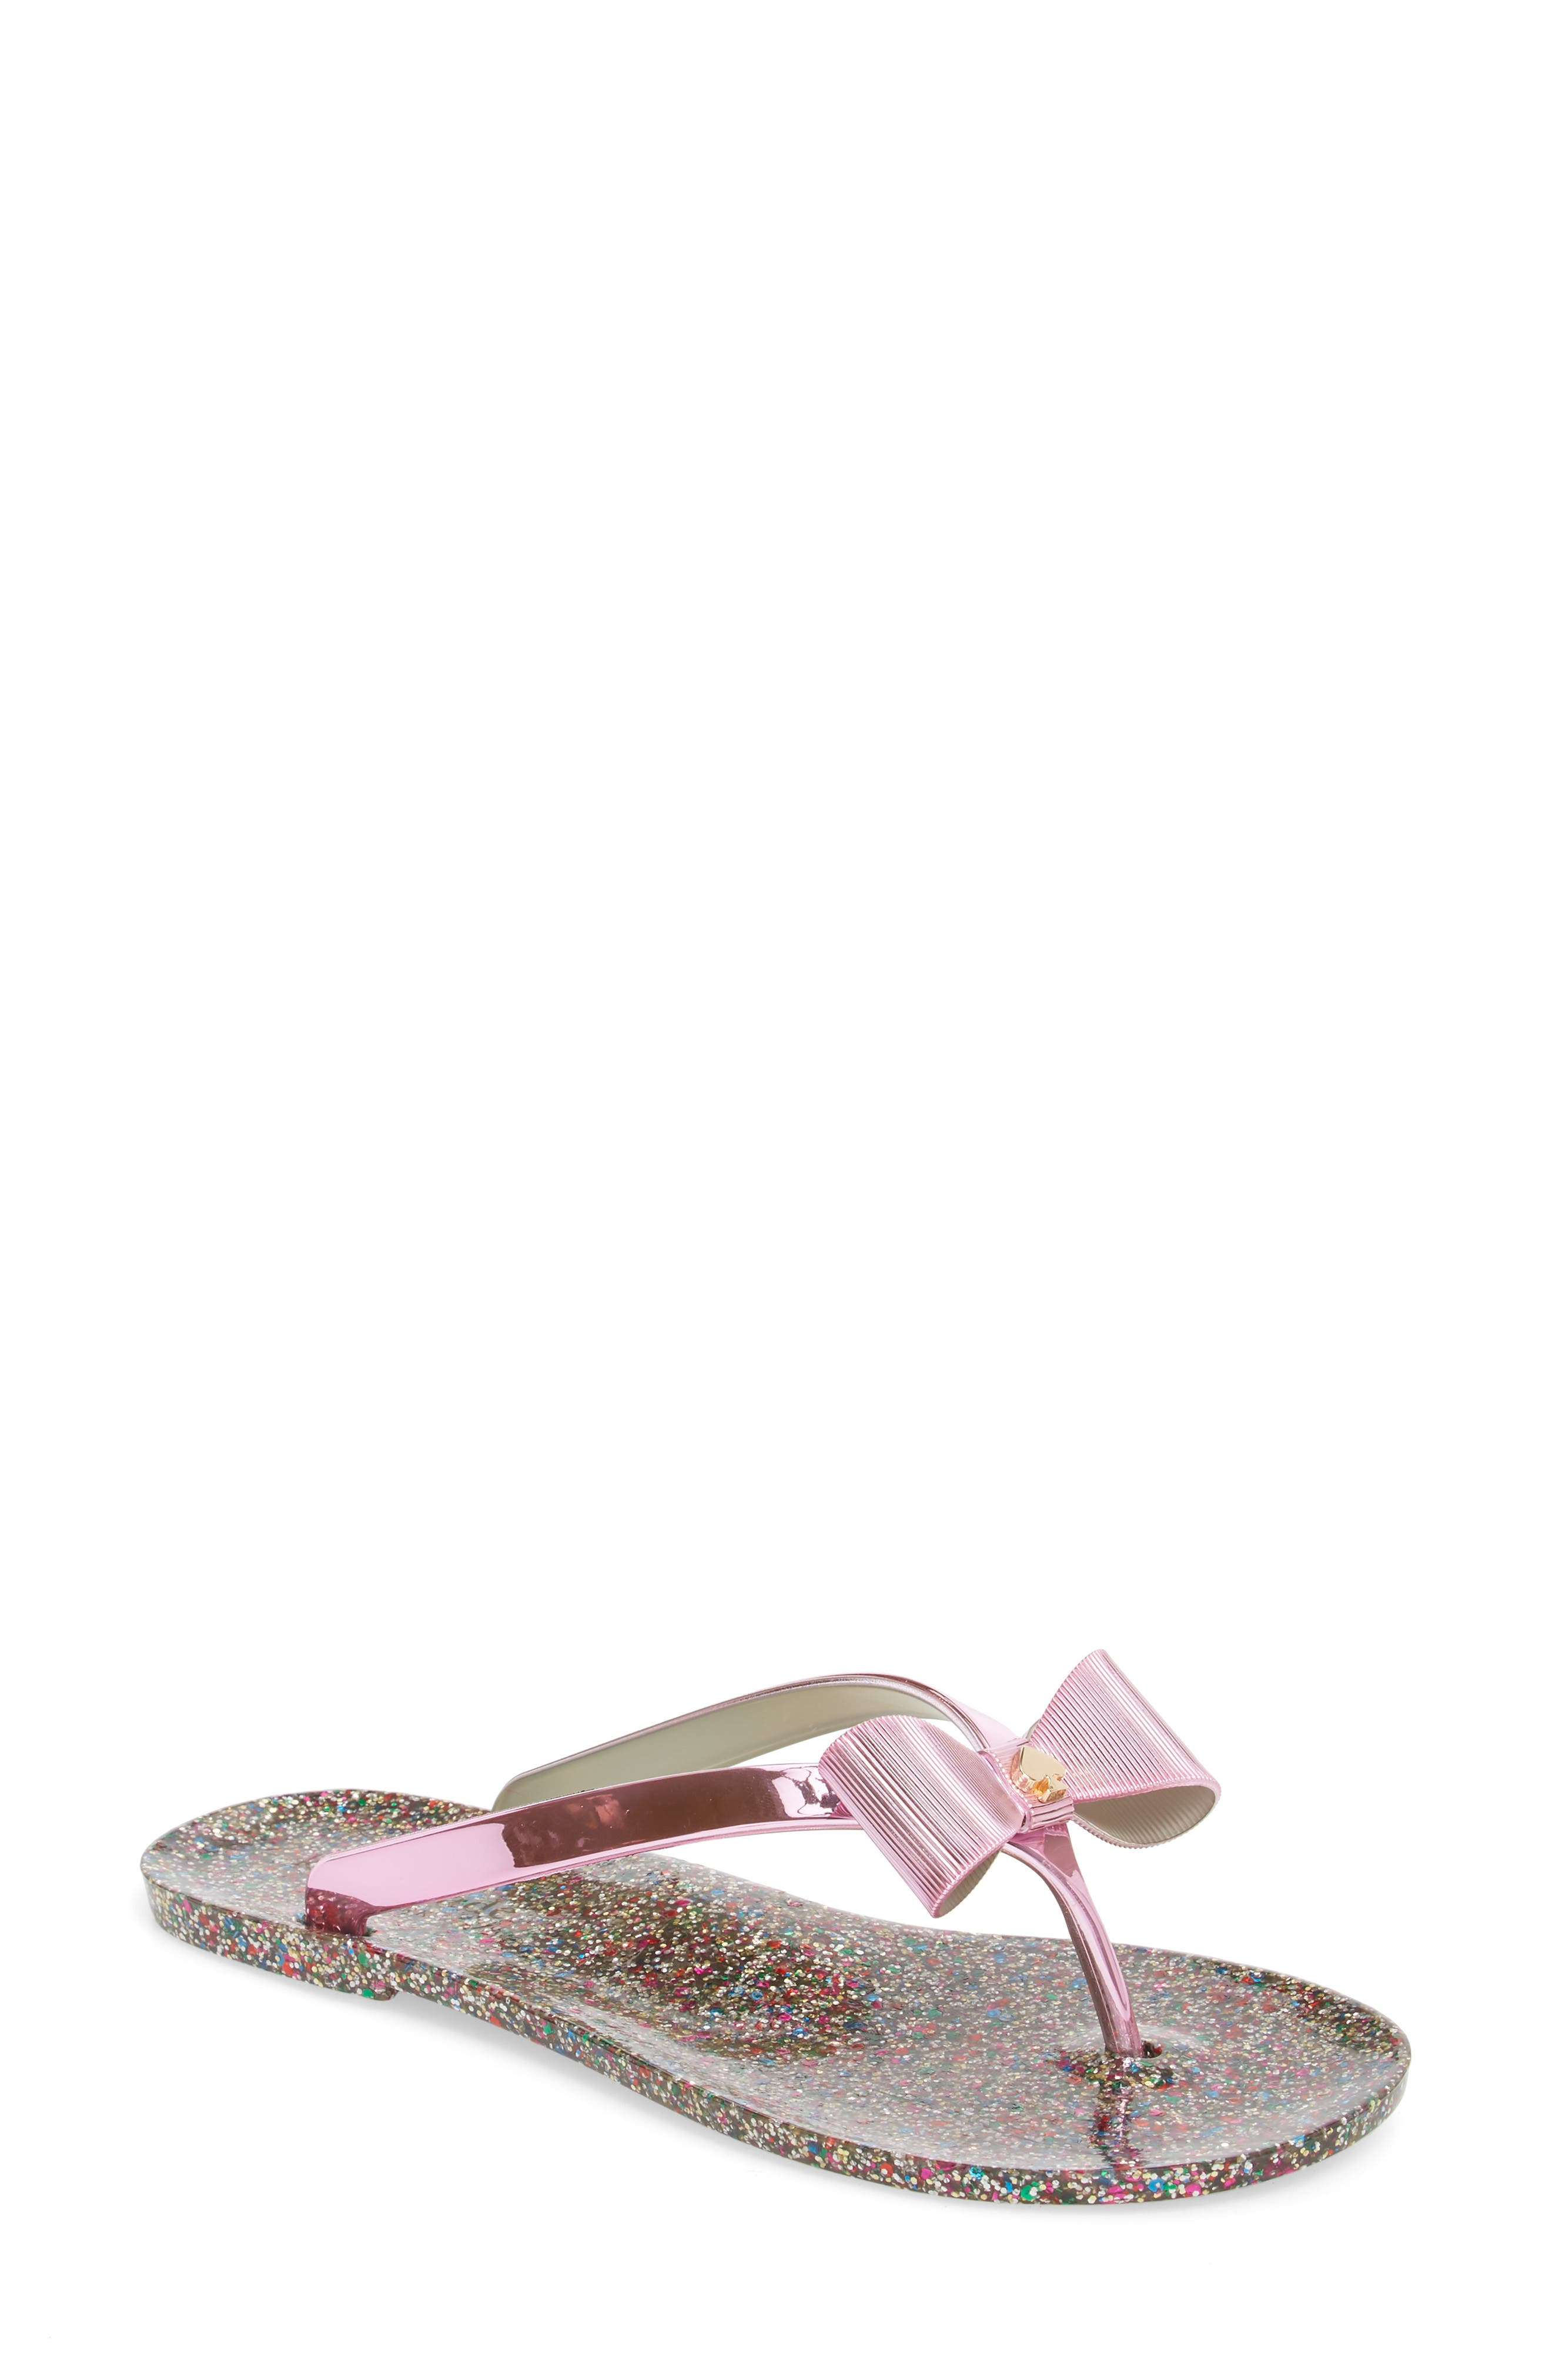 kate spade new york follie glitter flip flop (Women)